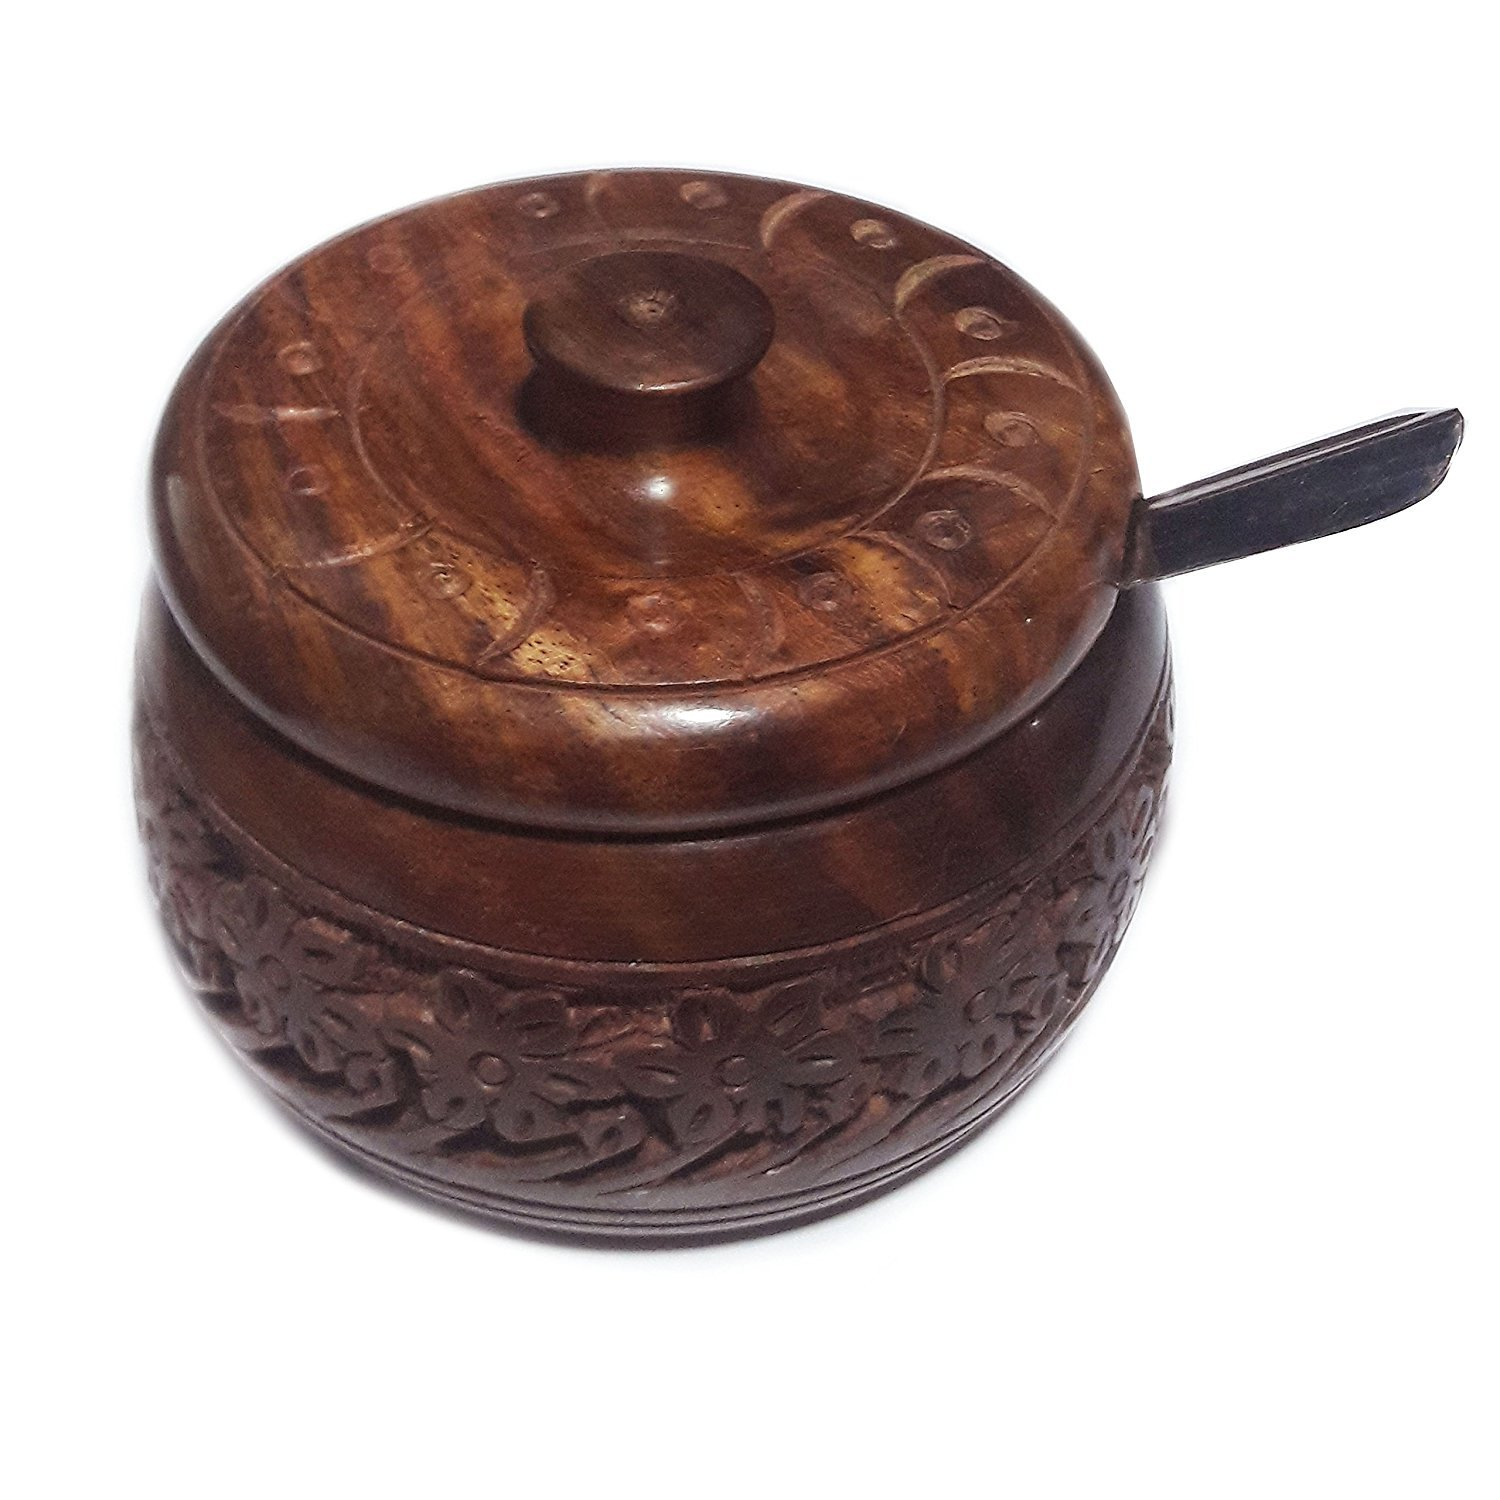 Xmas present, Spice Storage Containers, Wooden Jar Suger With Steel Bowl and Spoon, Storage For Spices, Brown Color Size 4 X 2.5 Inch